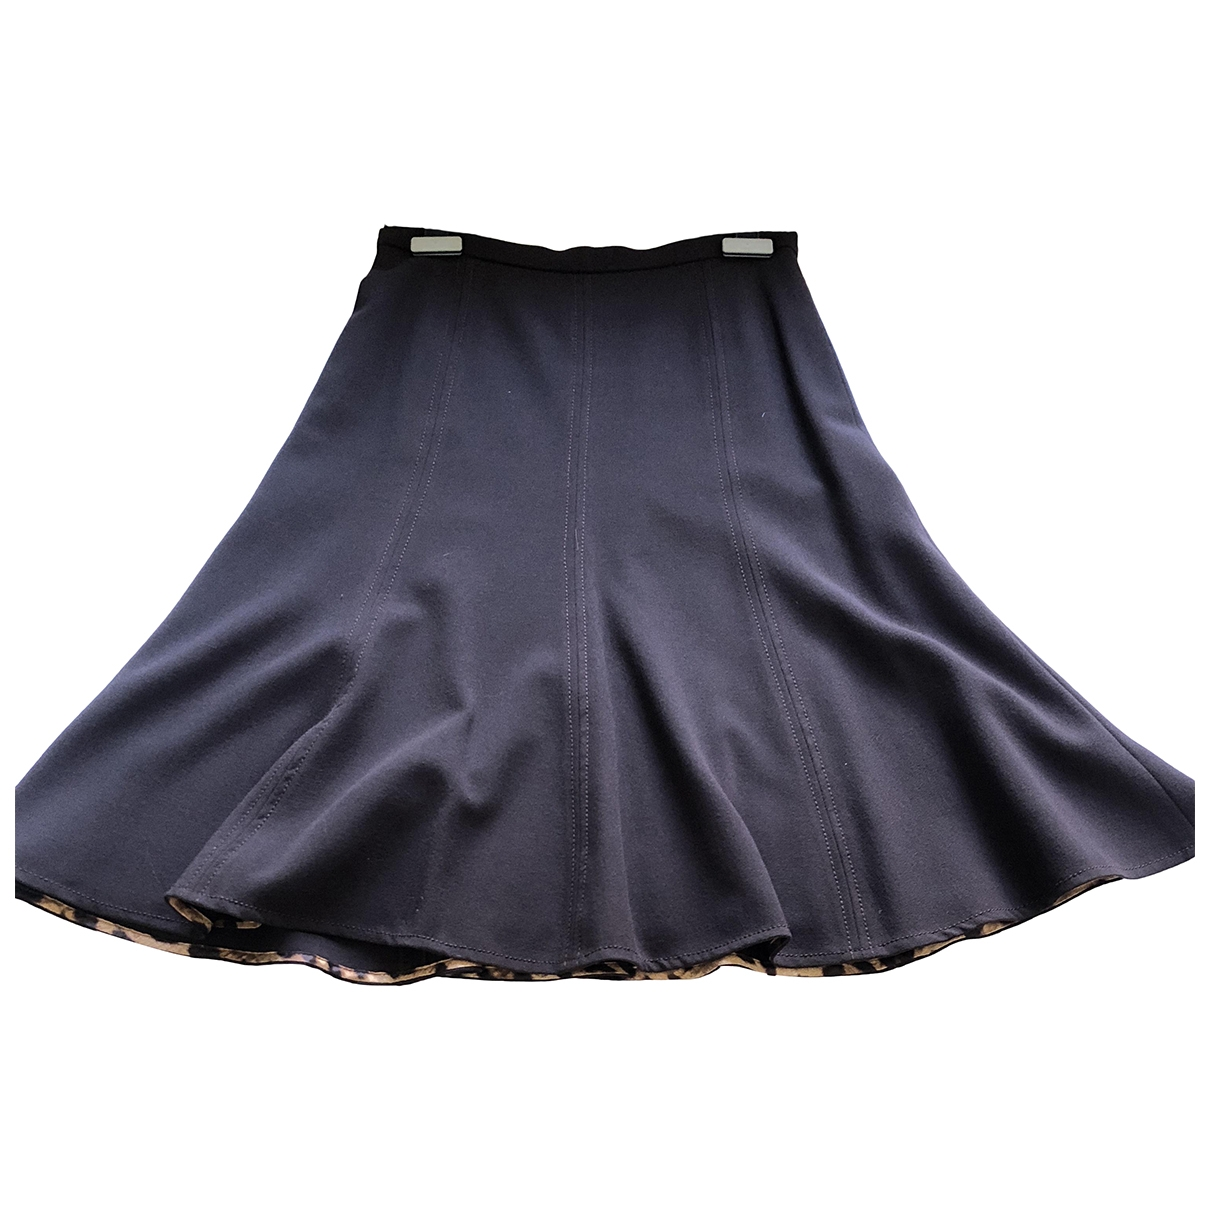 Dolce & Gabbana \N Brown Wool skirt for Women 40 IT